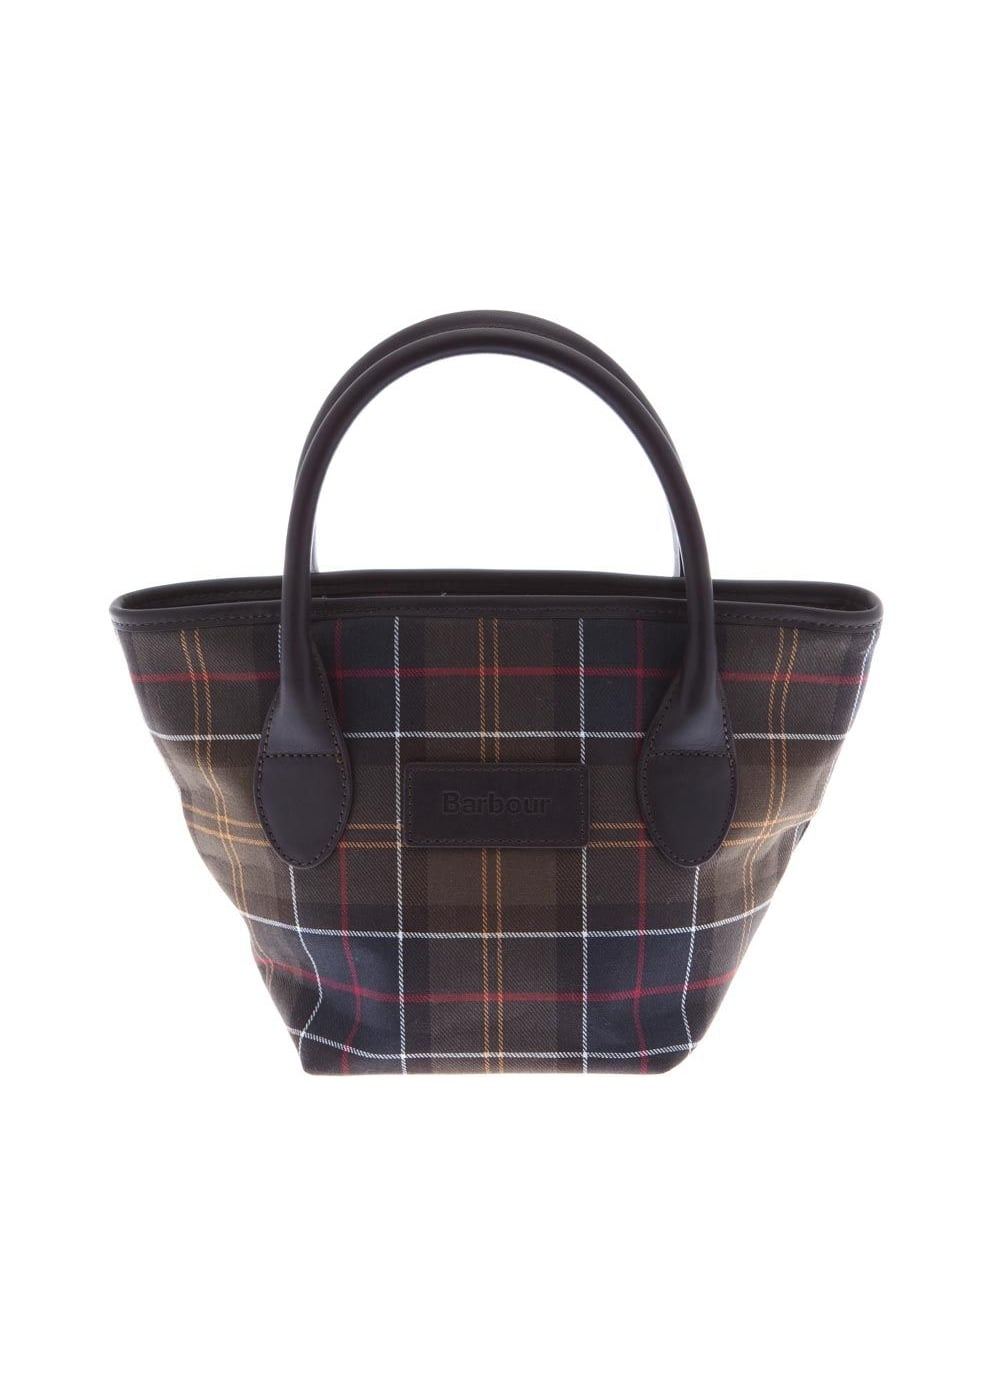 Barbour Tartan Tote Bag Large Image